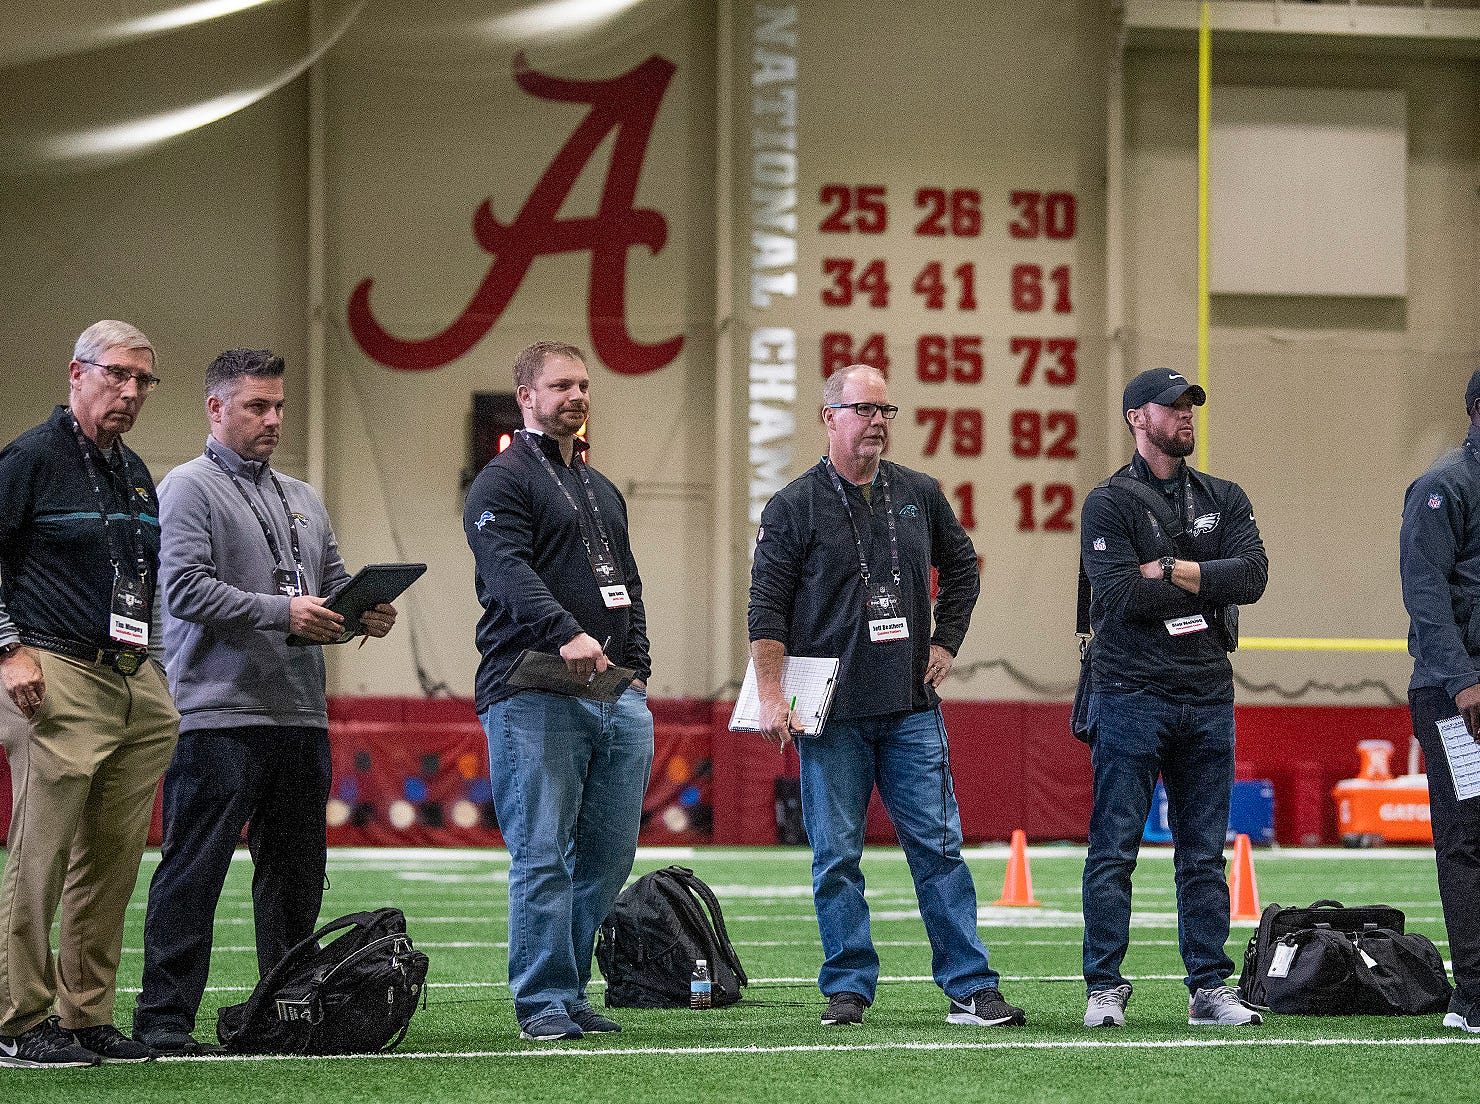 NFL scouts watch during Pro Day on the University of Alabama campus in Tuscaloosa, Ala., on Tuesday March 19, 2019.